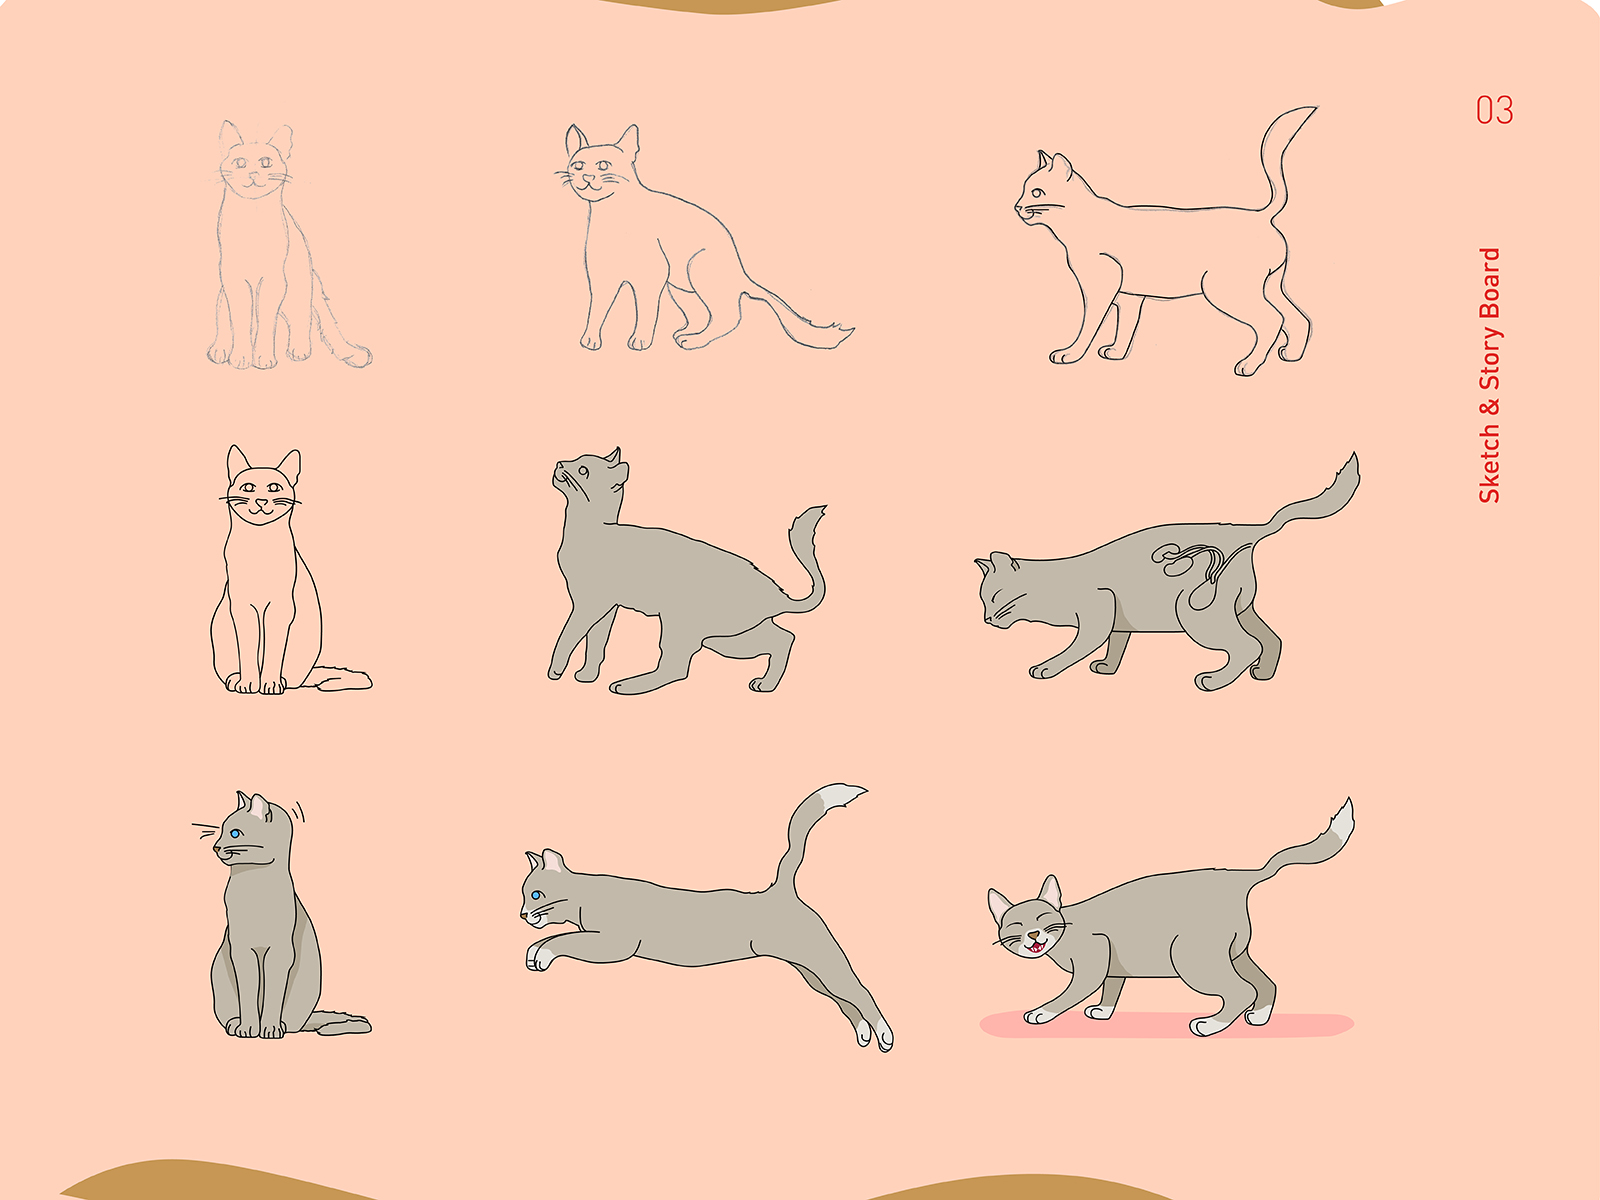 Royal Canin wet food promotional video cat character sketch and graphic illustration process